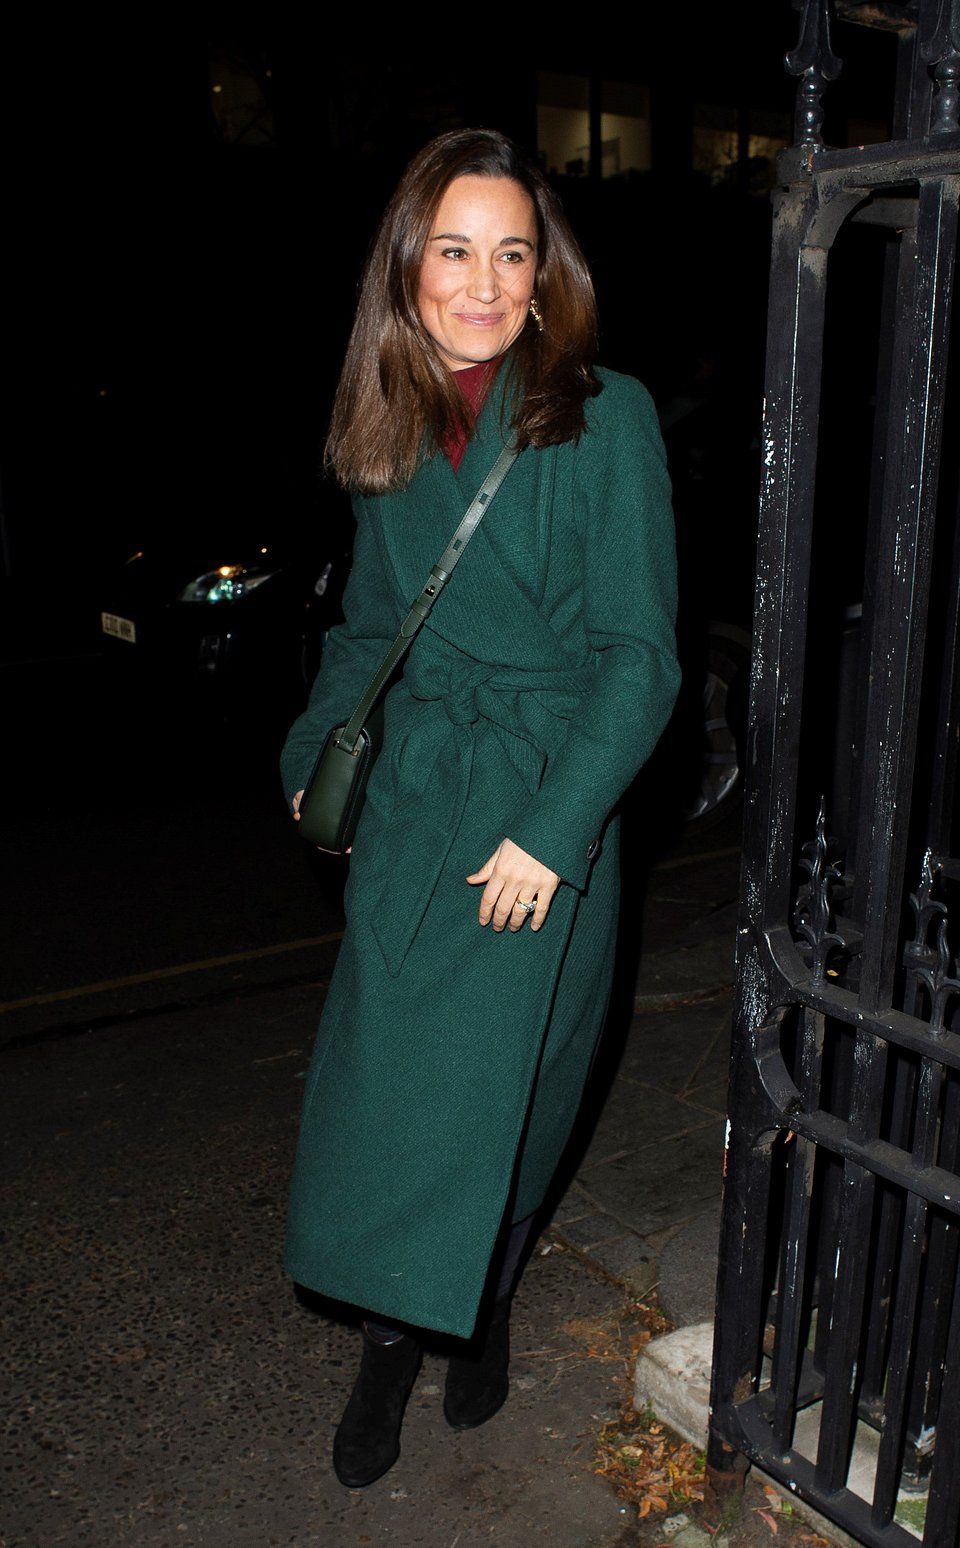 Pippa Middleton Mango coat-Right from GOFF 05122019.jpg